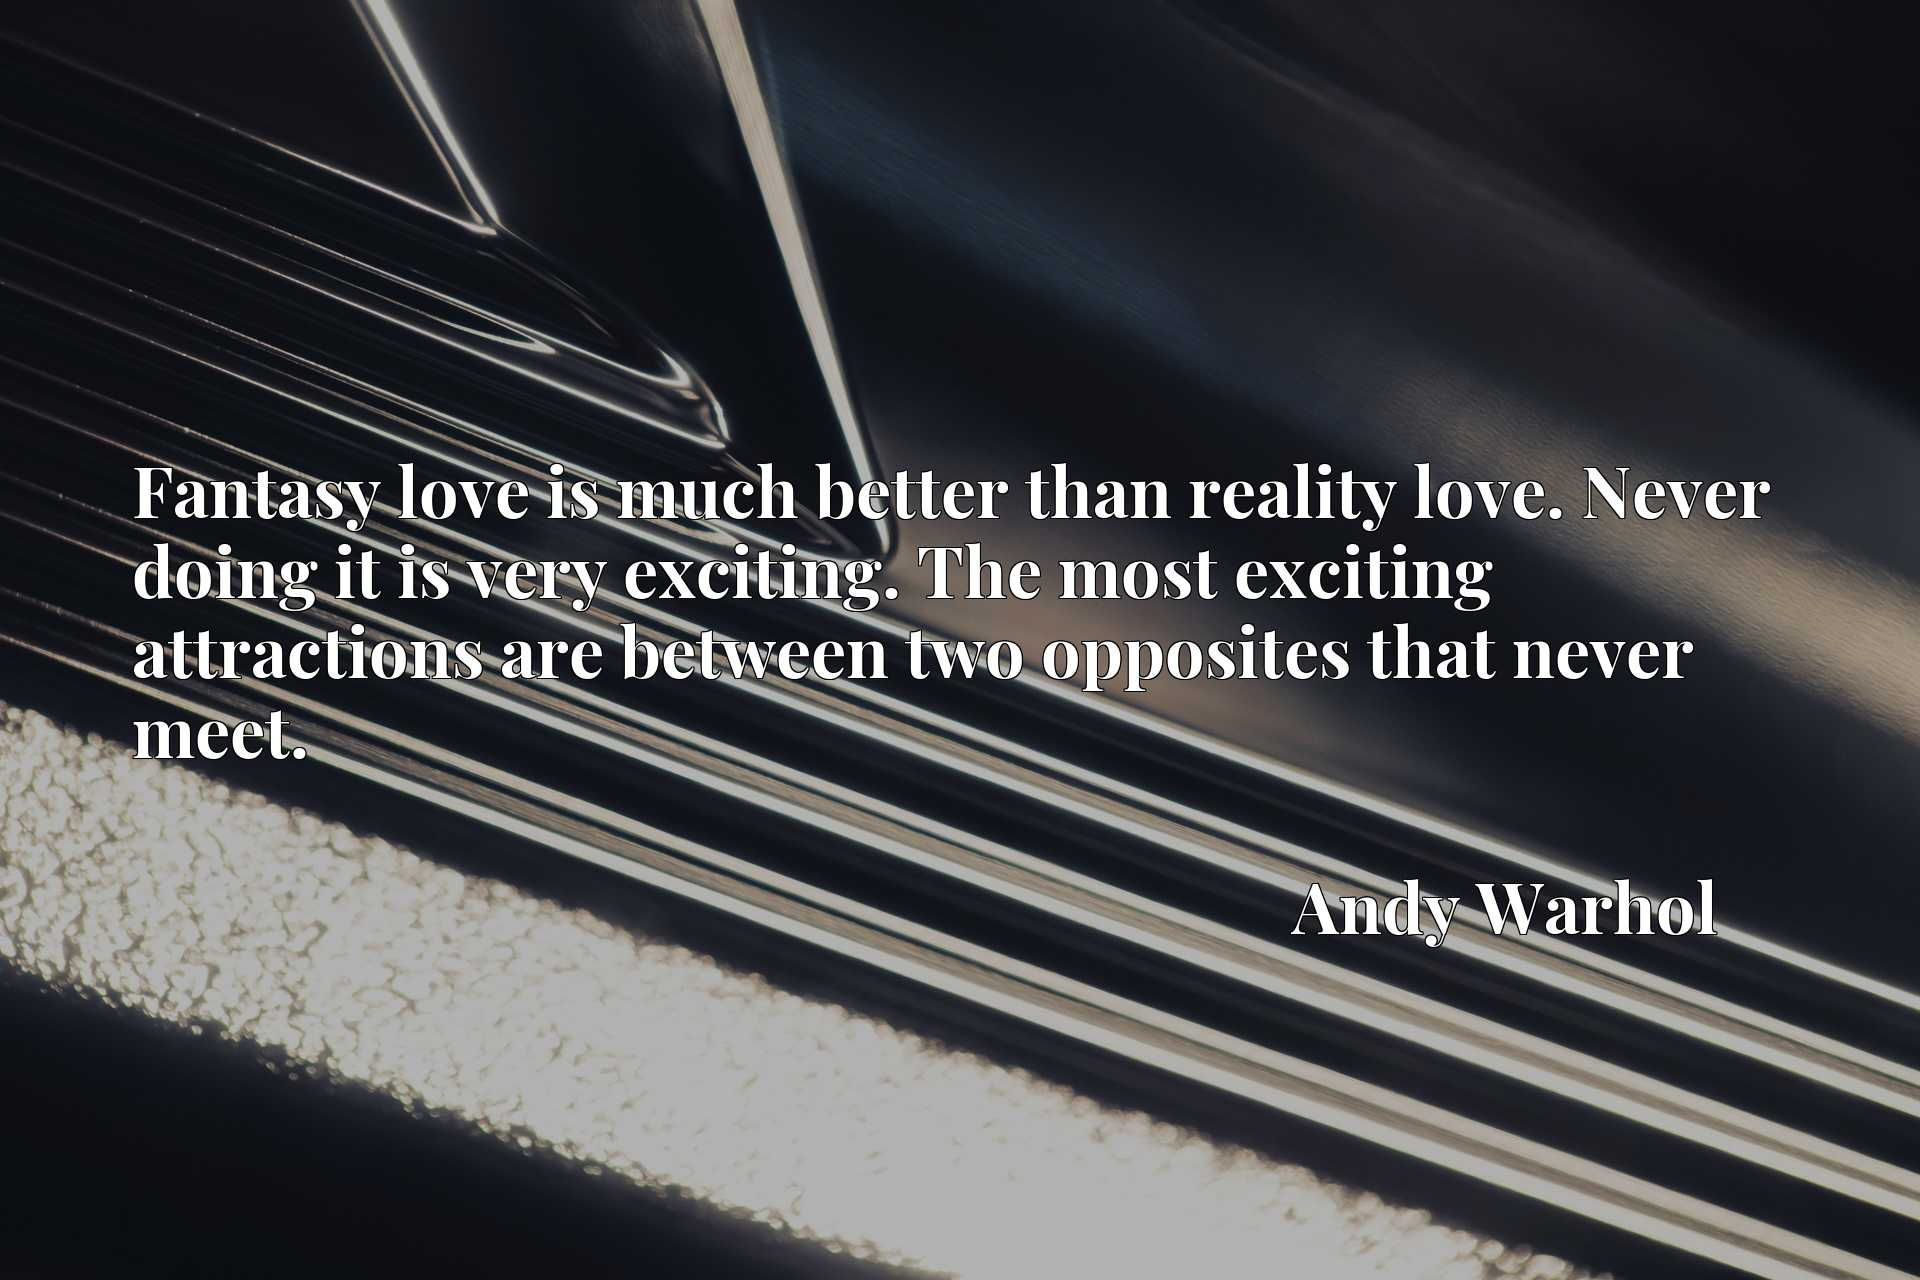 Fantasy love is much better than reality love. Never doing it is very exciting. The most exciting attractions are between two opposites that never meet.